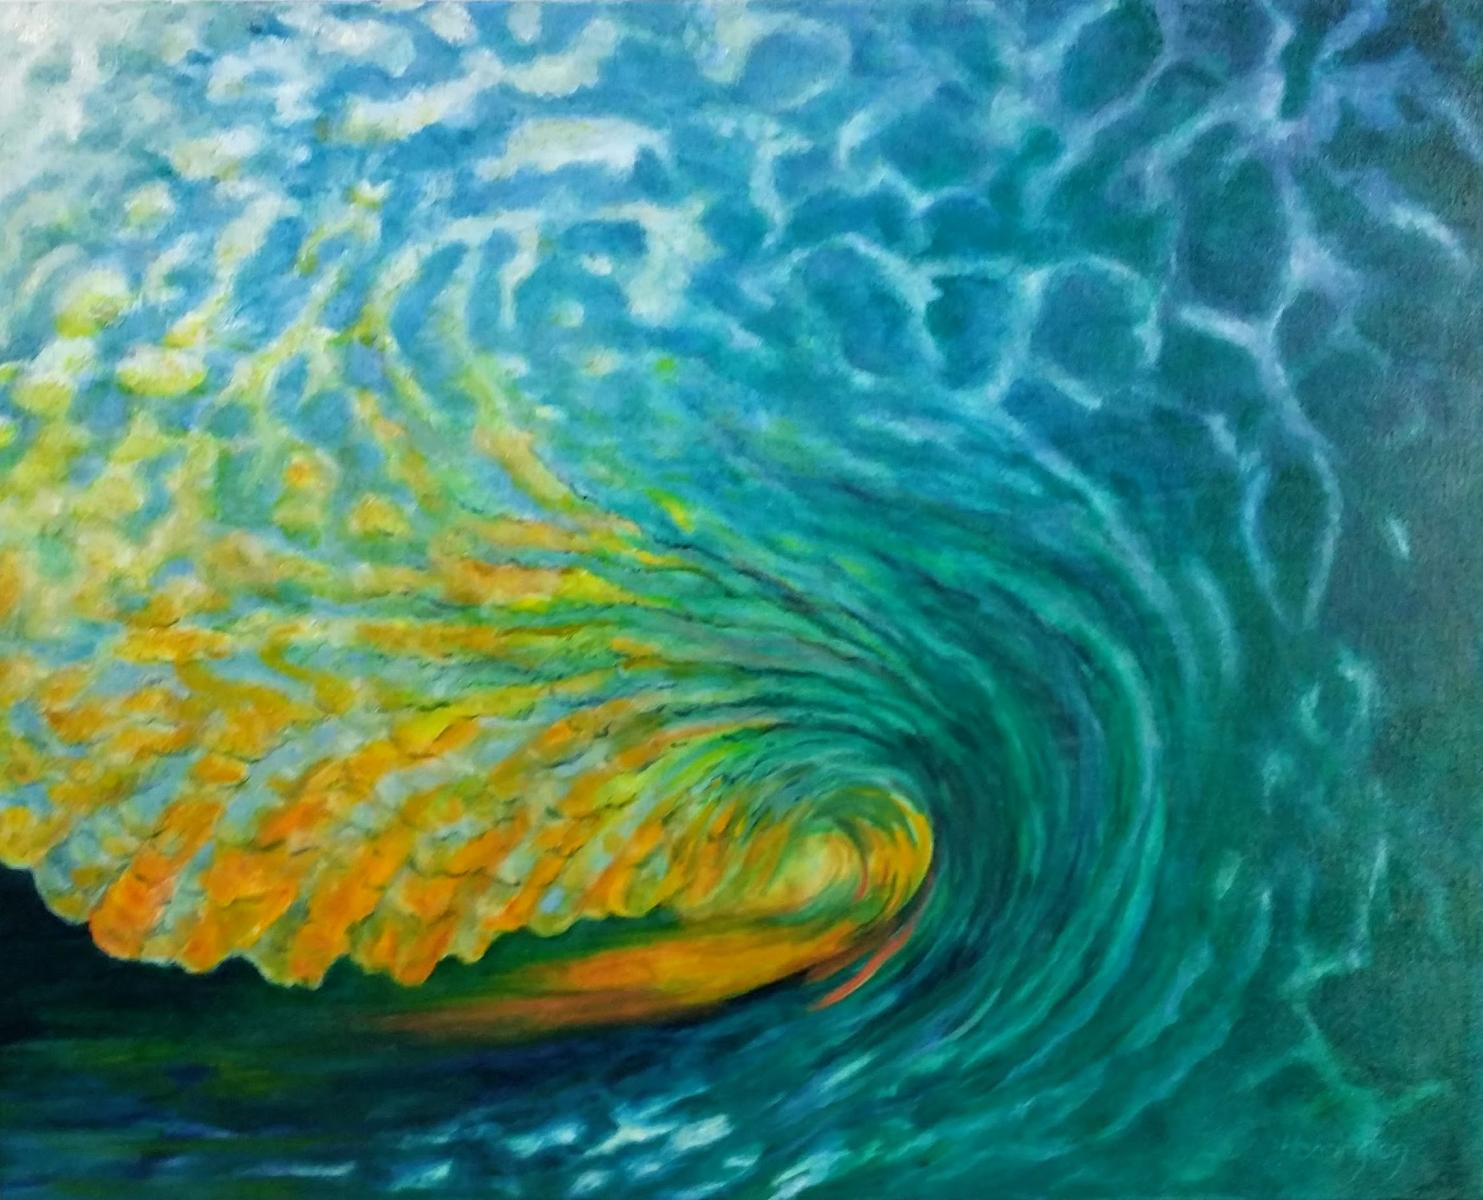 """Daybreak Wave"" oil on canvas, 61x76 cm, 24 x 30 inches [private collection, Sydney, Australia]"